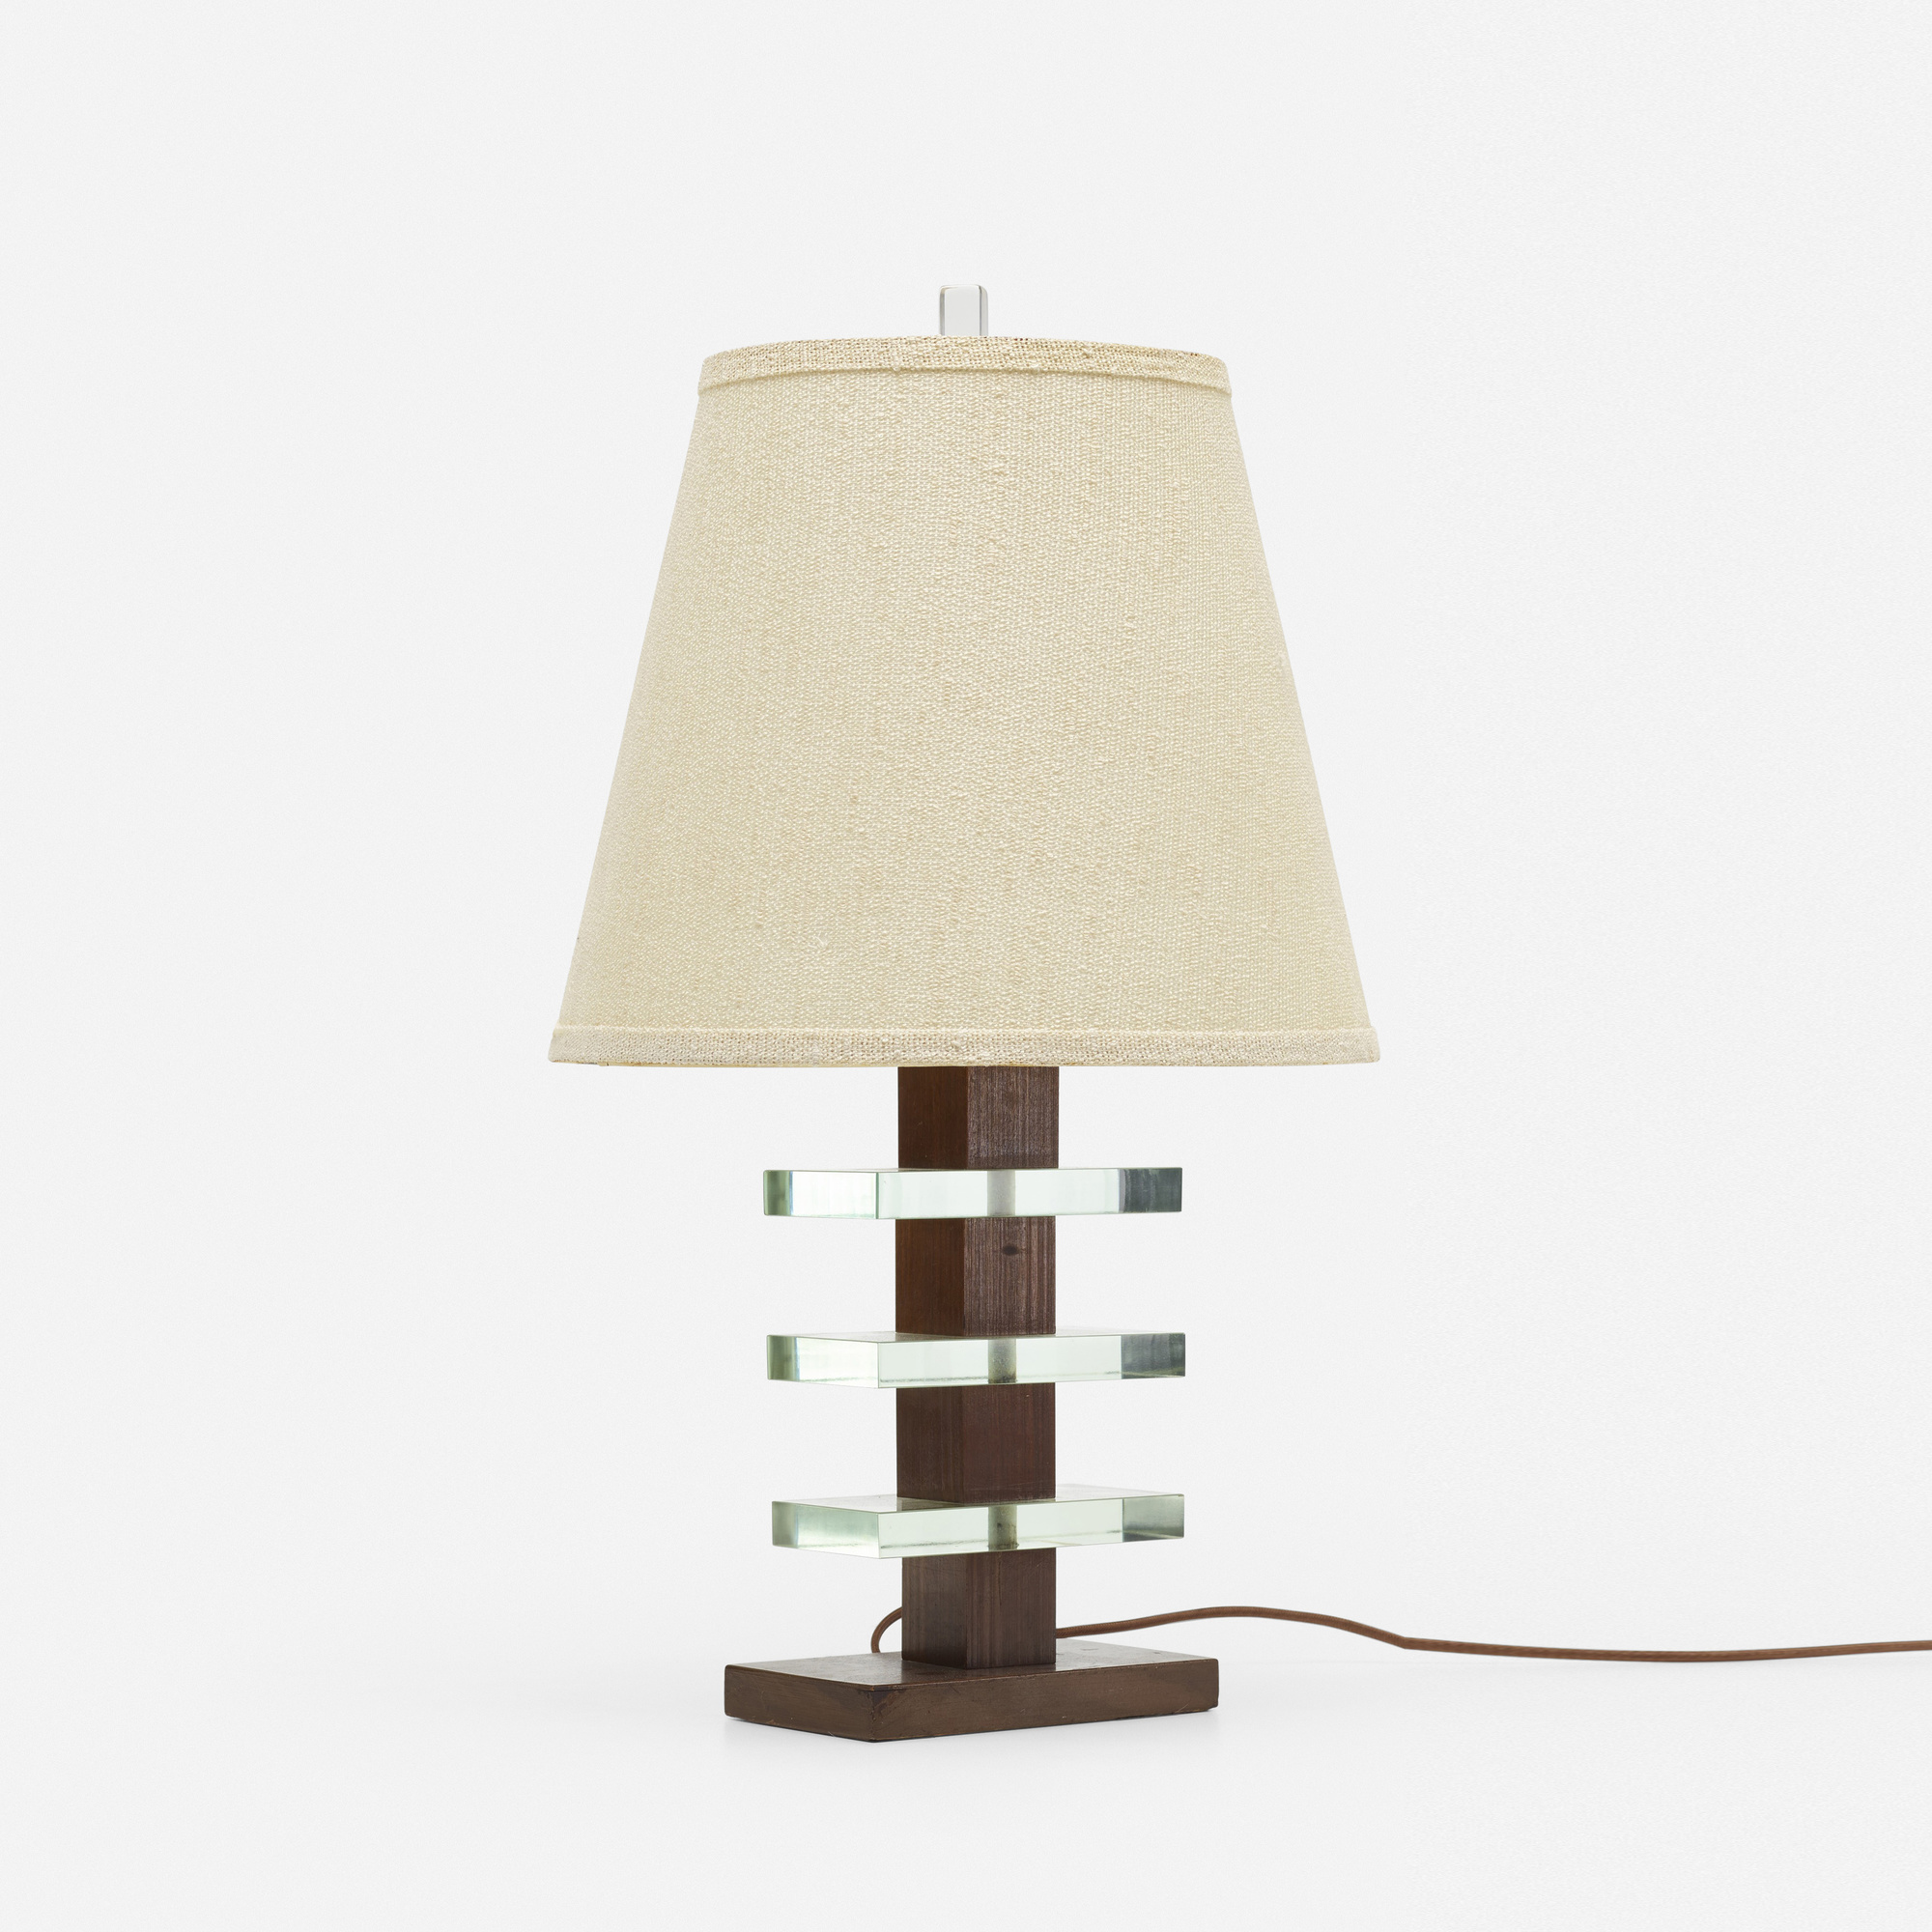 237: After Maison Desny / table lamp (1 of 1)